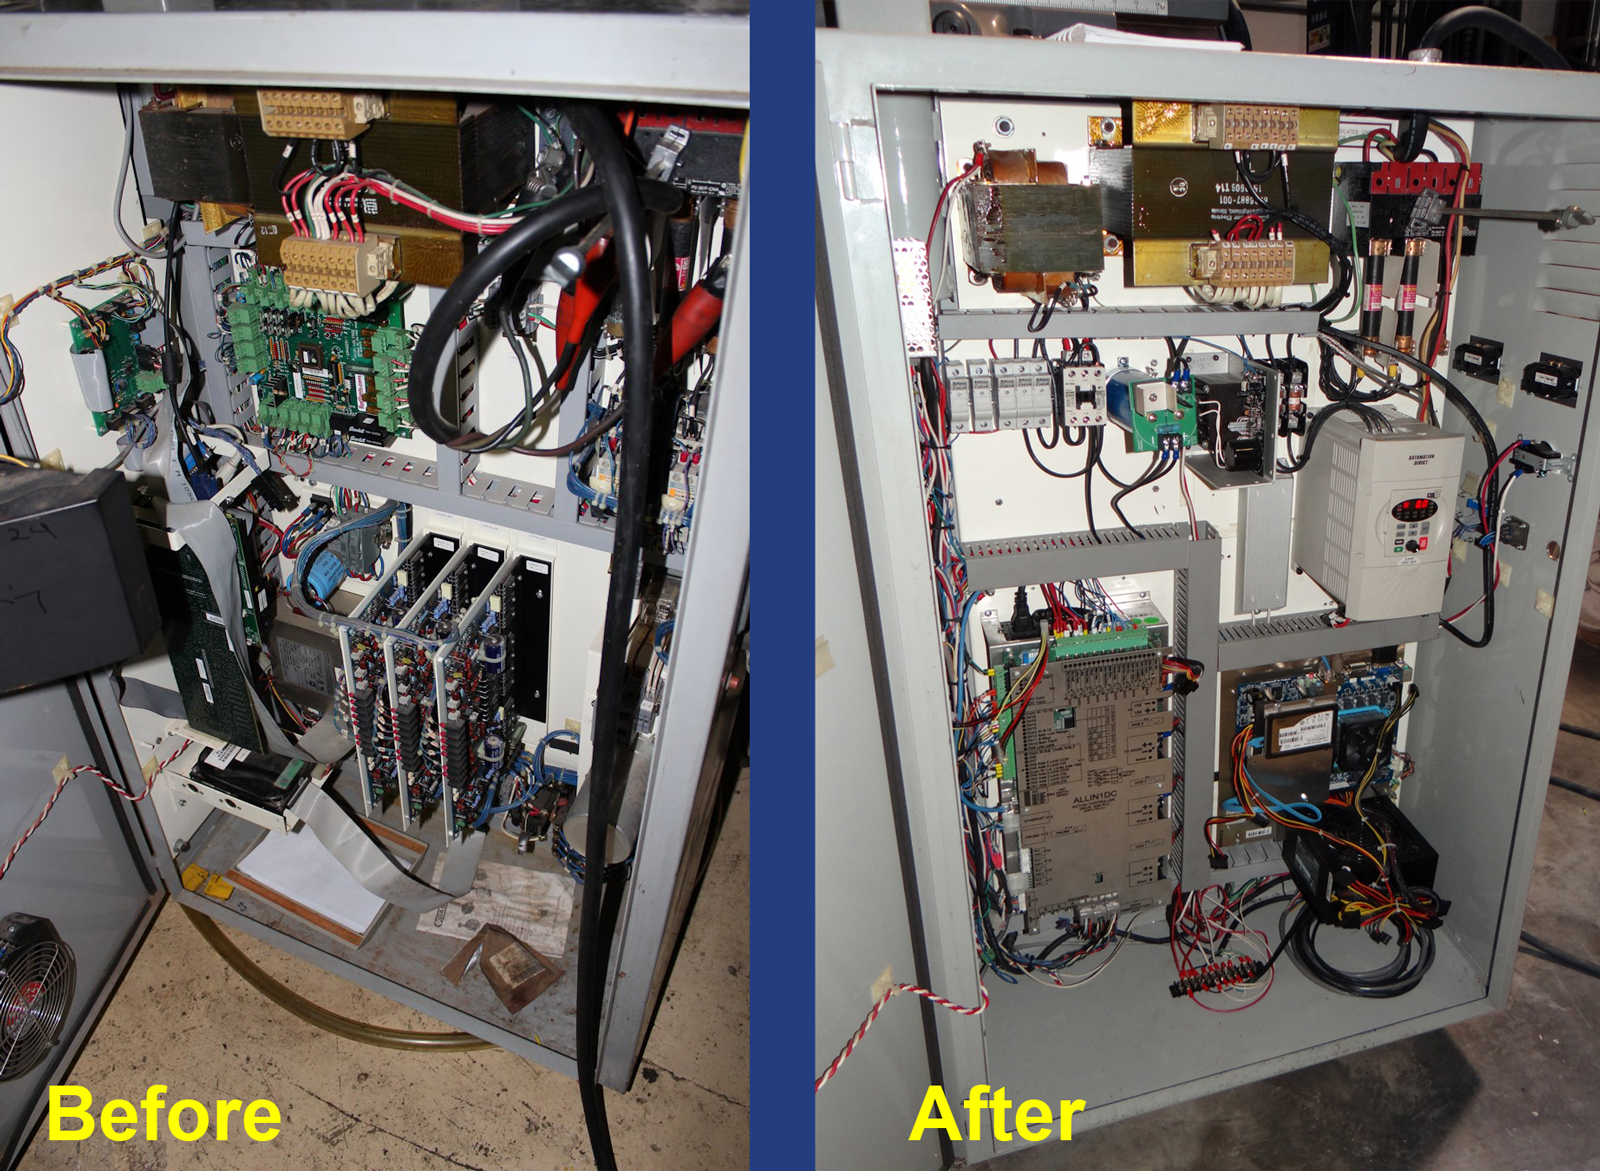 hight resolution of bridgeport cnc electrical cabinet before and after cnc upgrade